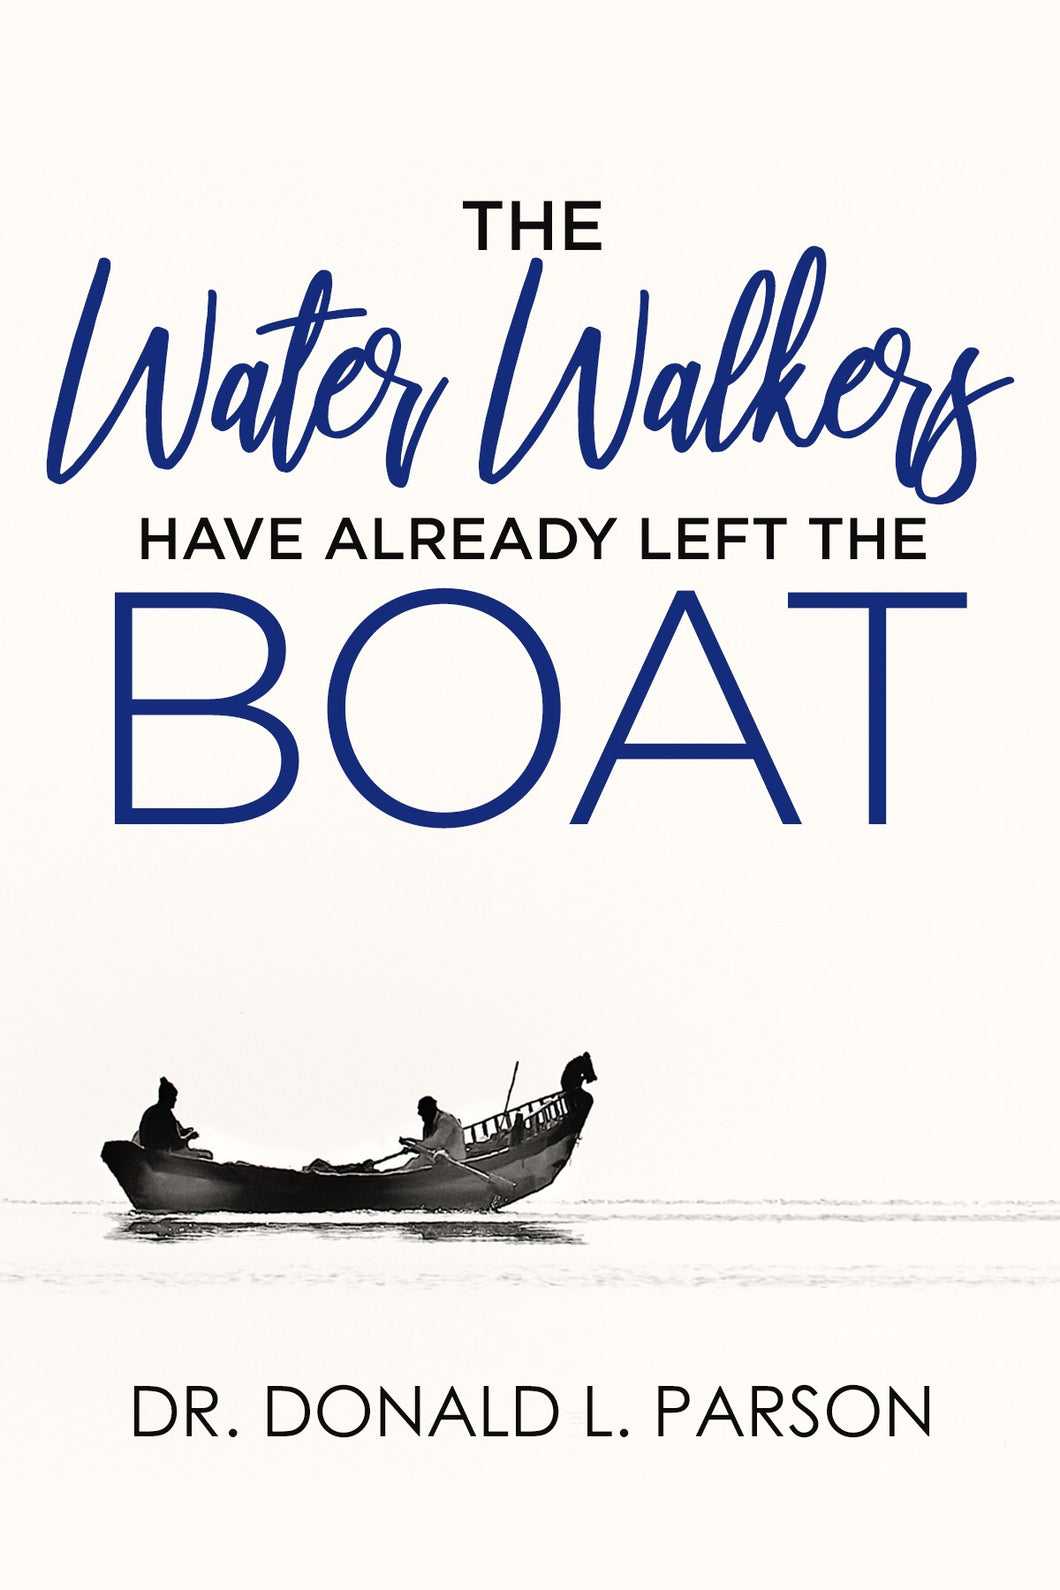 142nd Church Anniversary: The Water Walkers Have Already Left The Boat